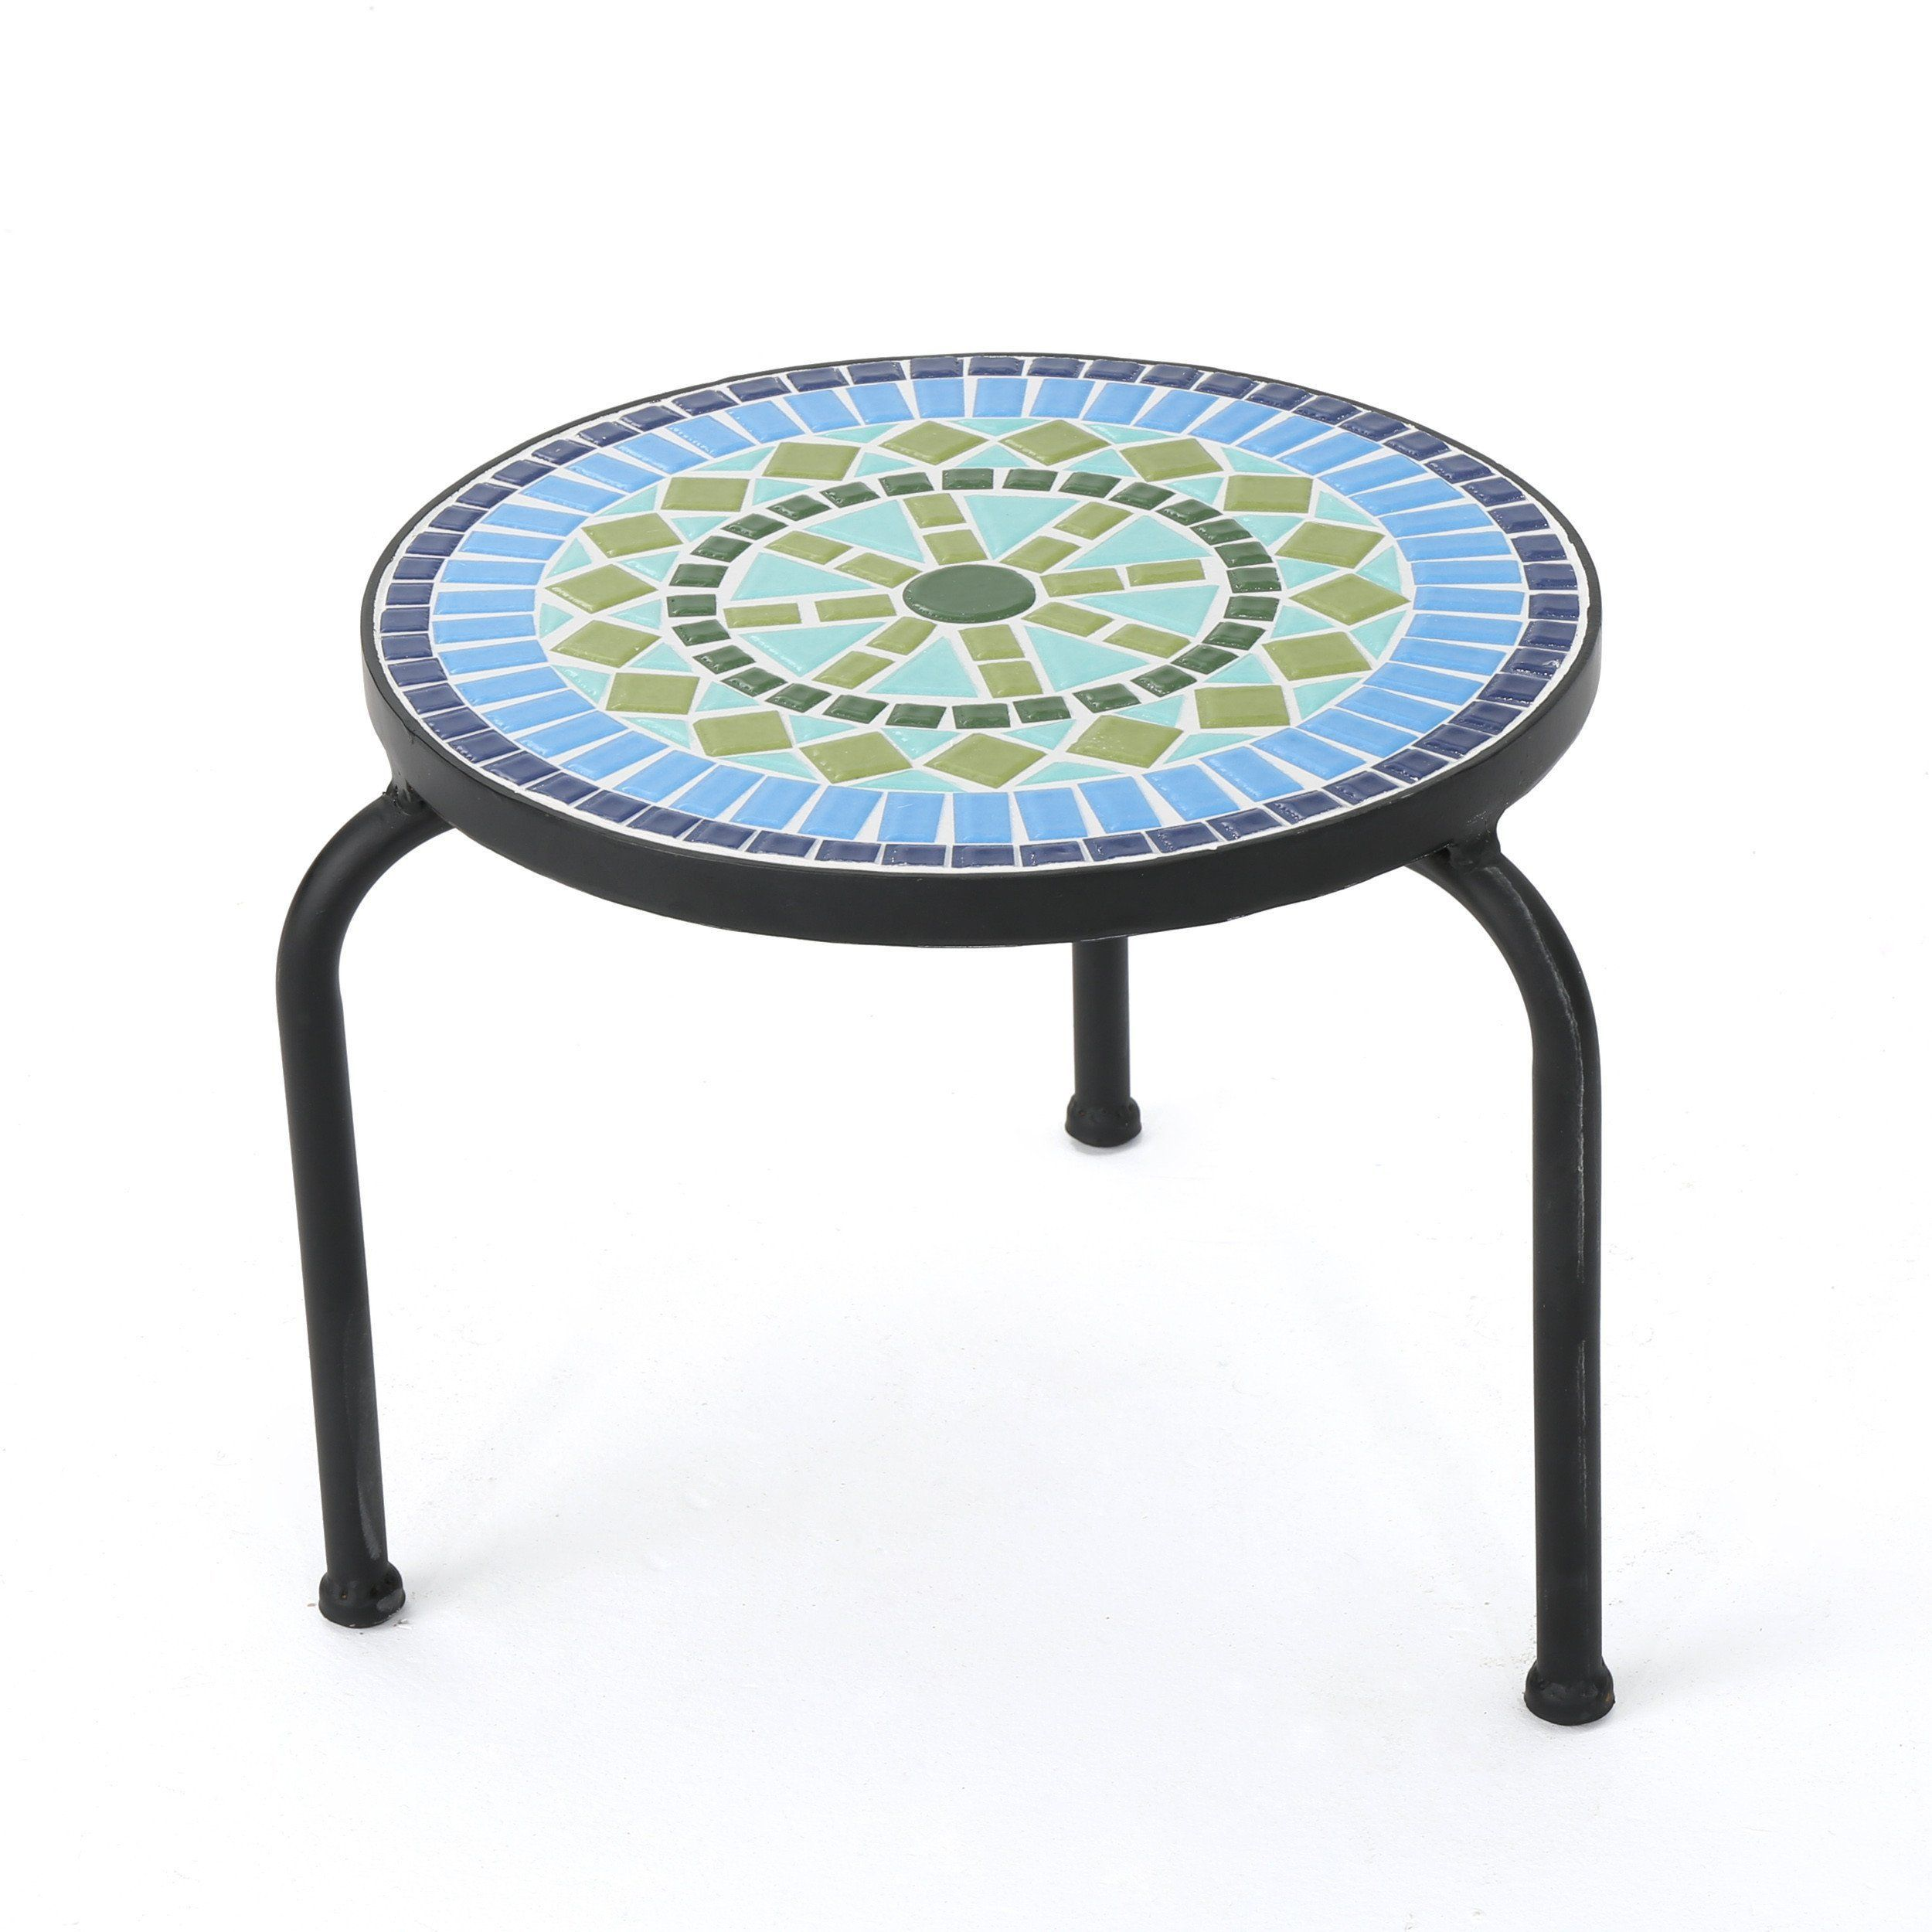 isildur outdoor blue green ceramic tile iron frame side table used end tables barnwood cabinets small linen tablecloth round lamp for living room woven glass chairside mirrored